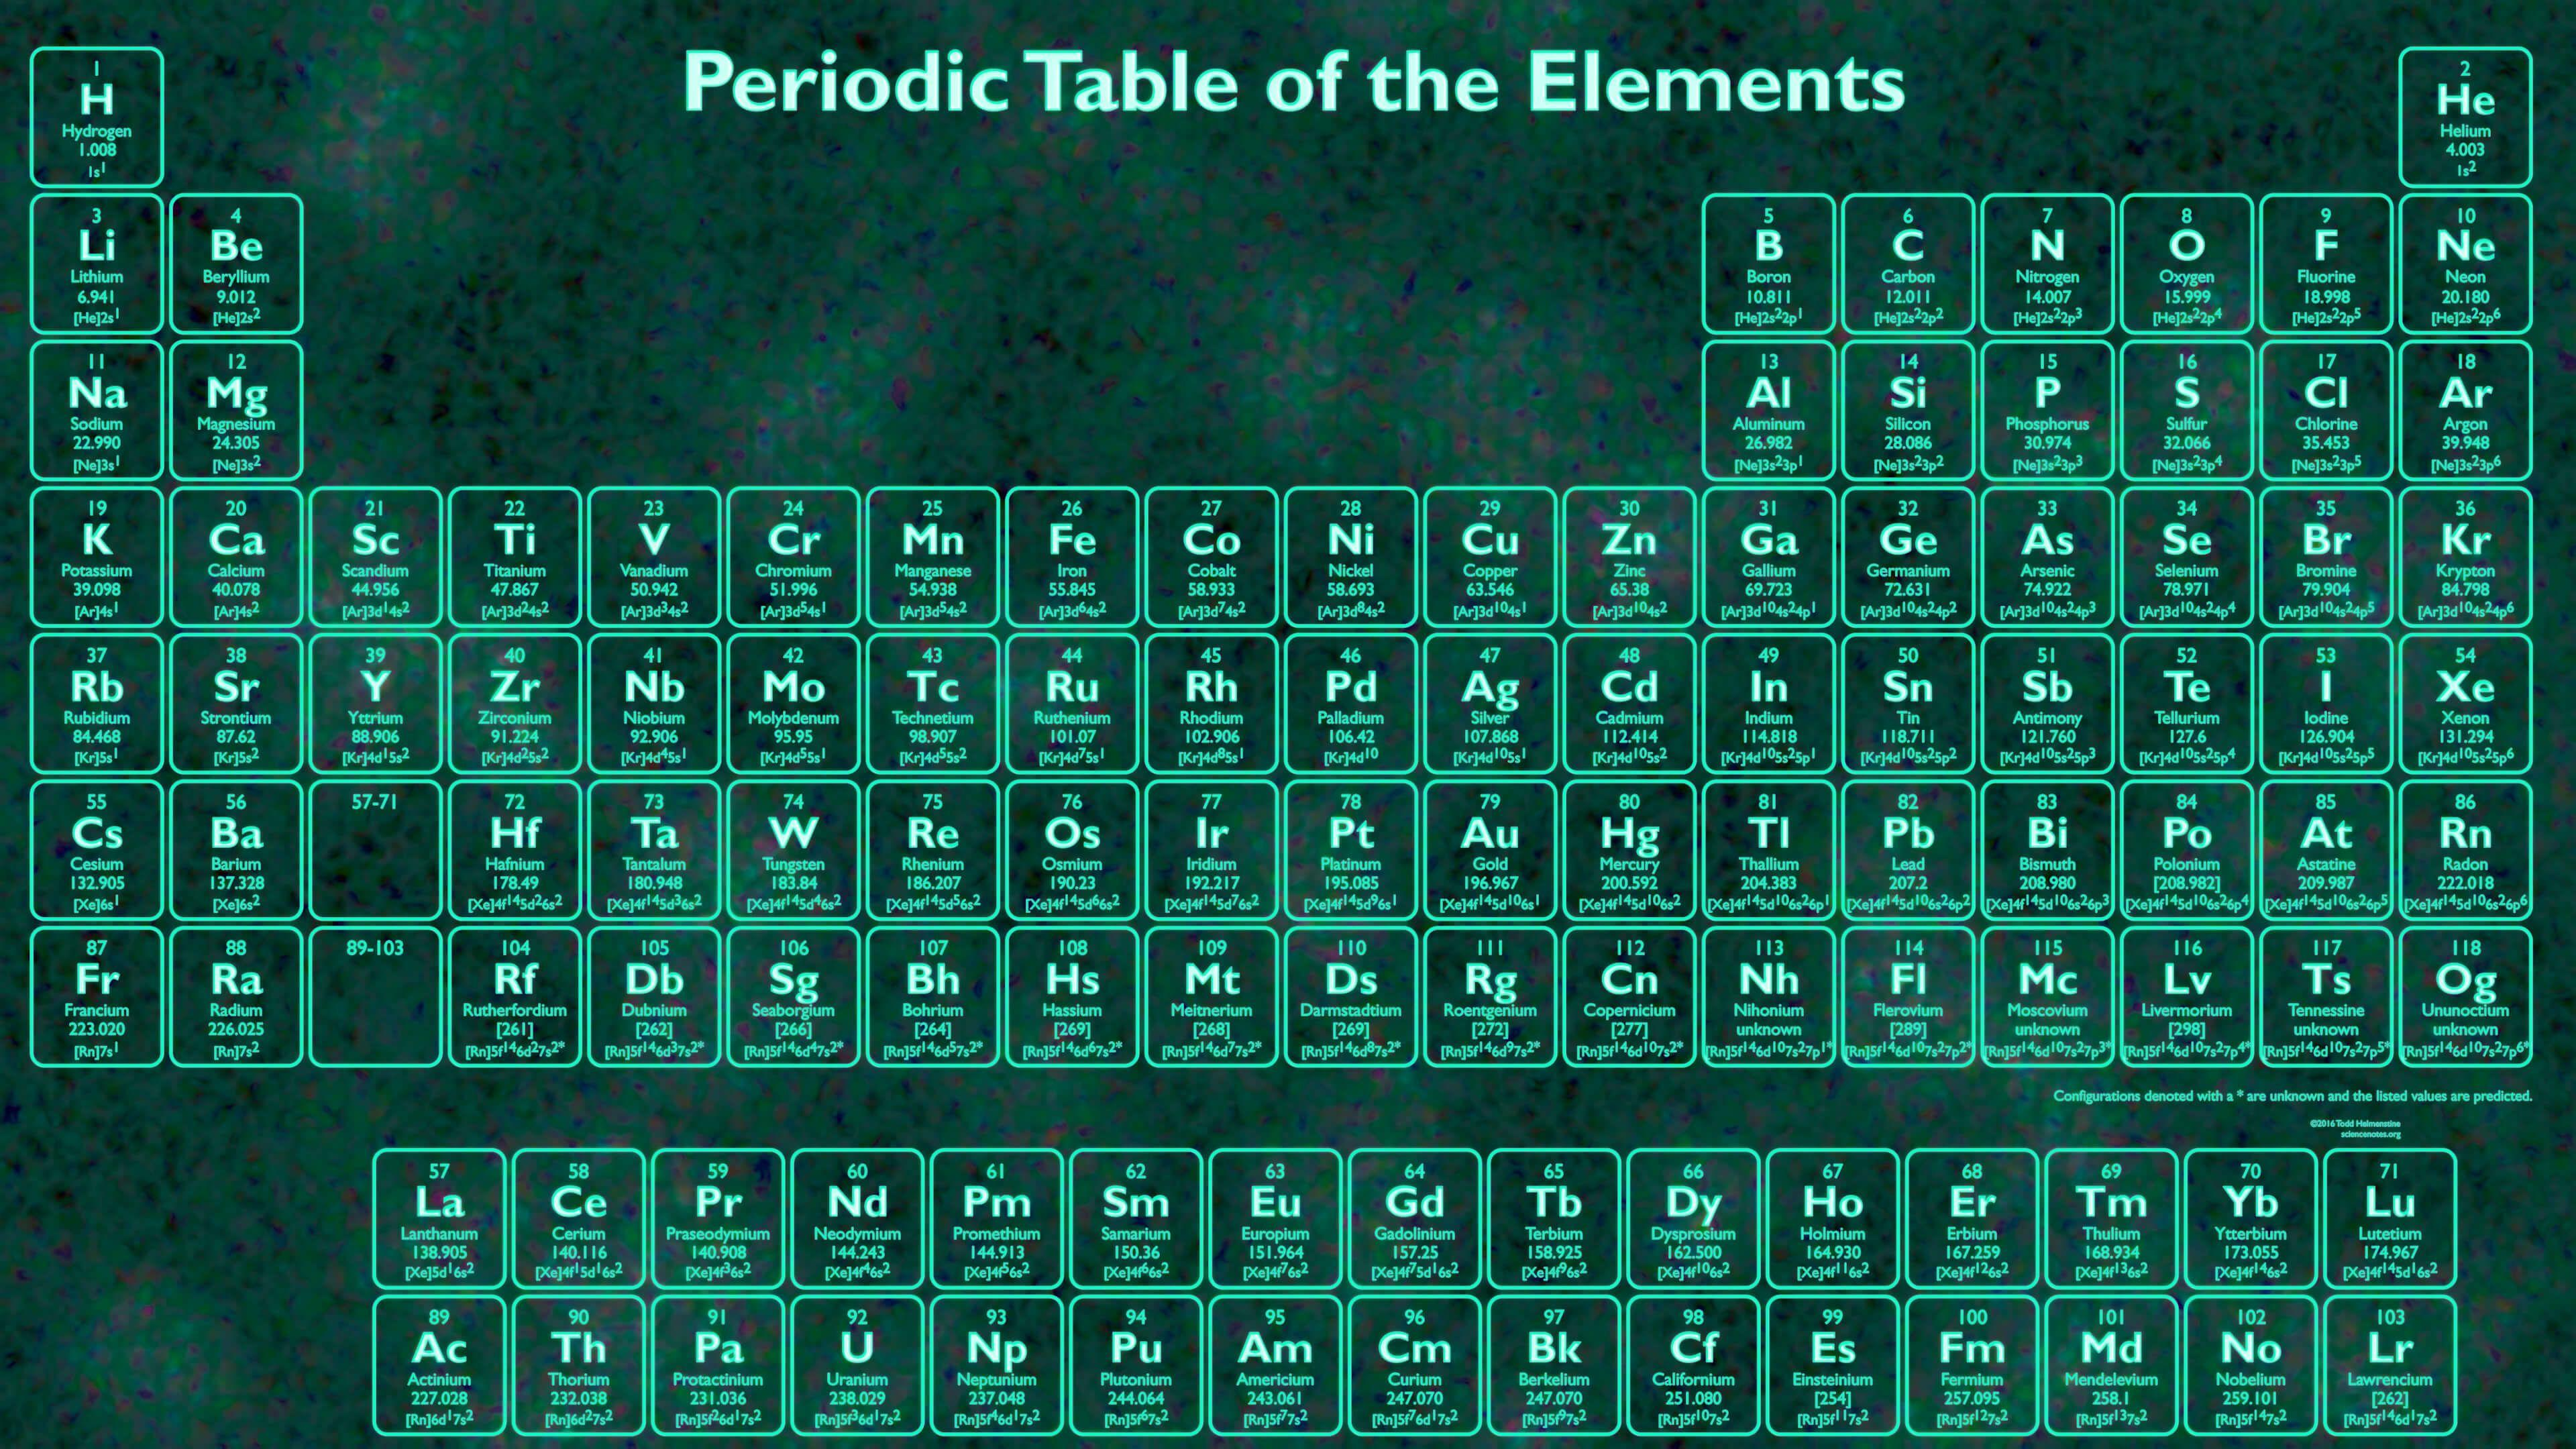 Glow In The Dark 4K Periodic Table Wallpapers With 118 Elements